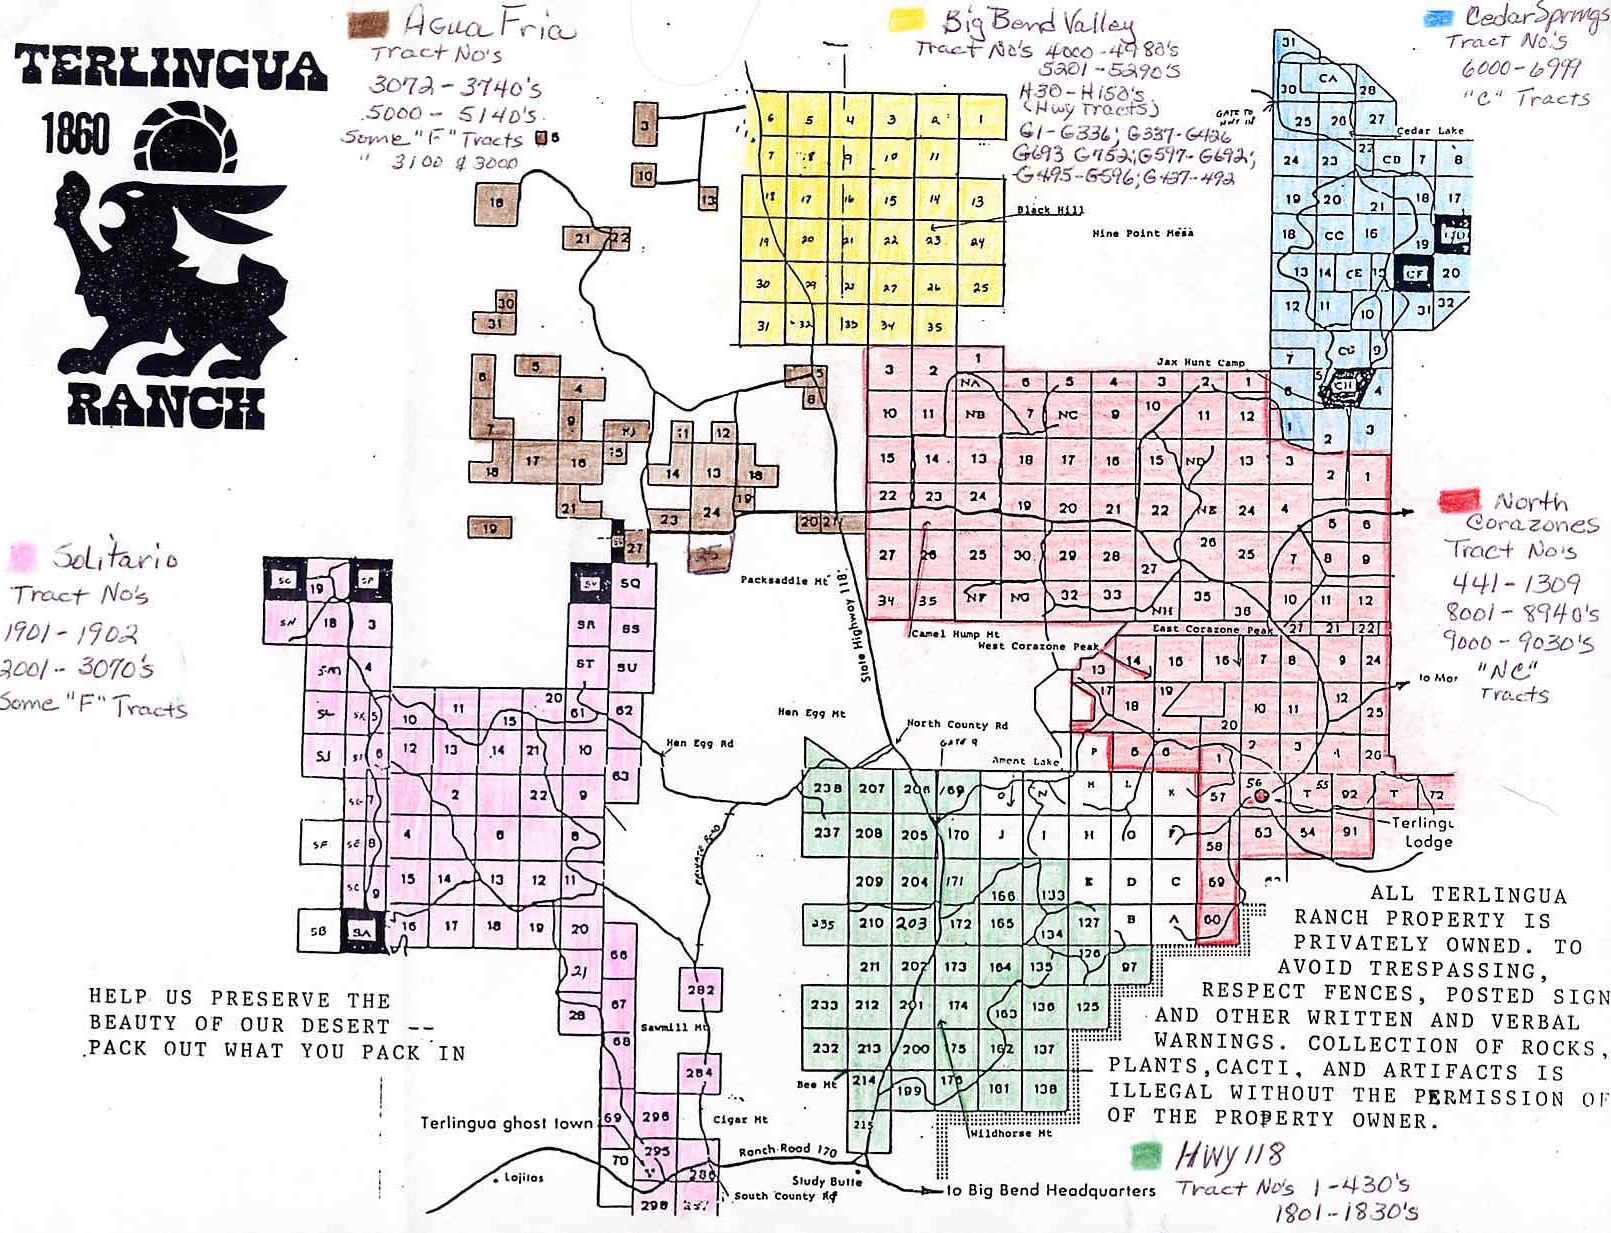 Brewster County Property Maps